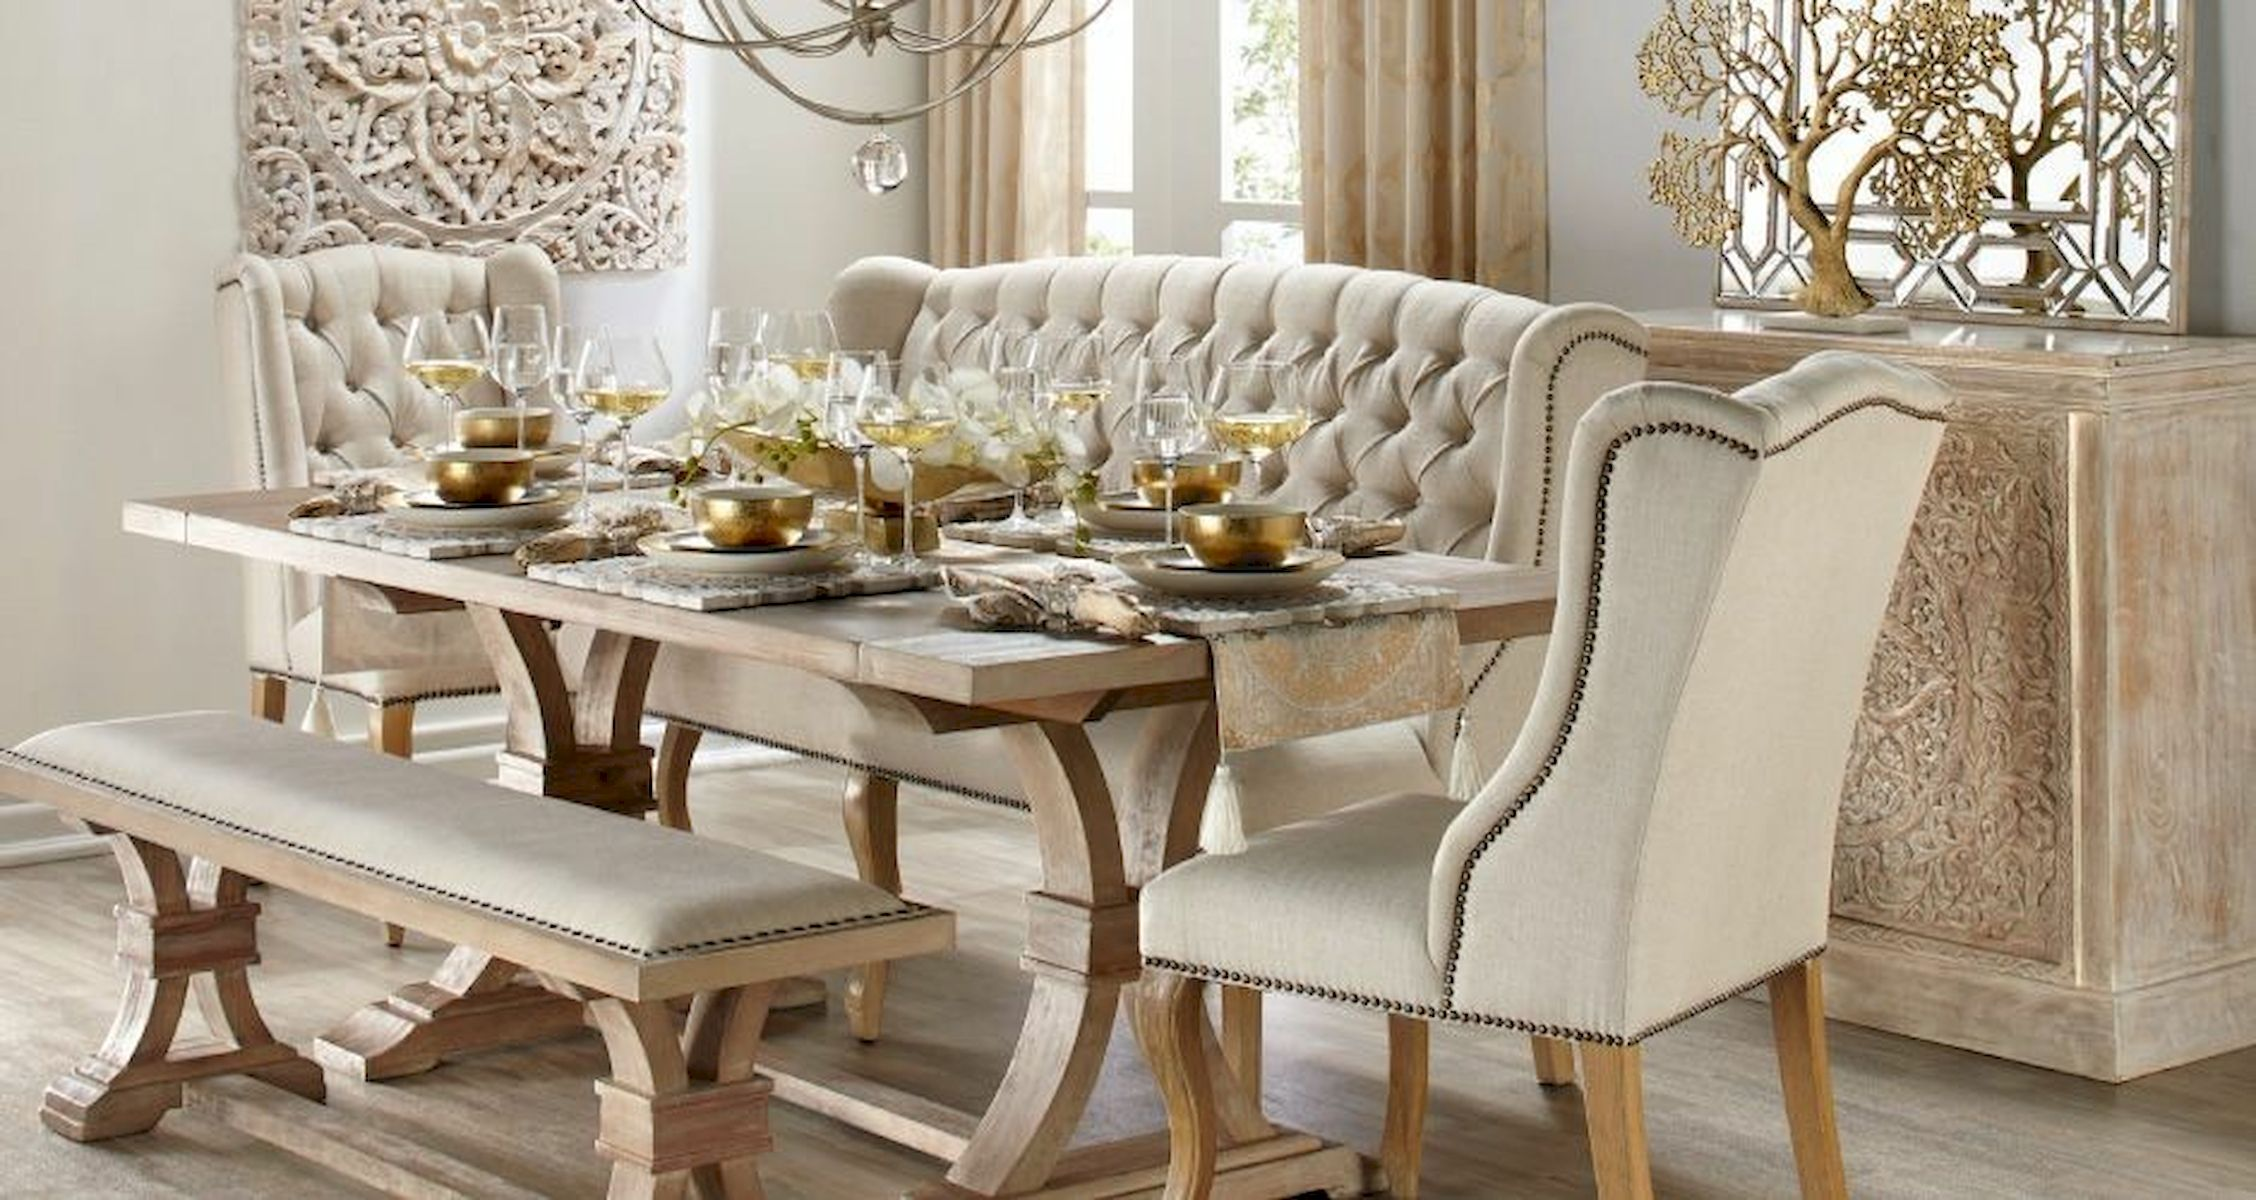 50 Gorgeous Dinning Room Design and Decor Ideas (47)